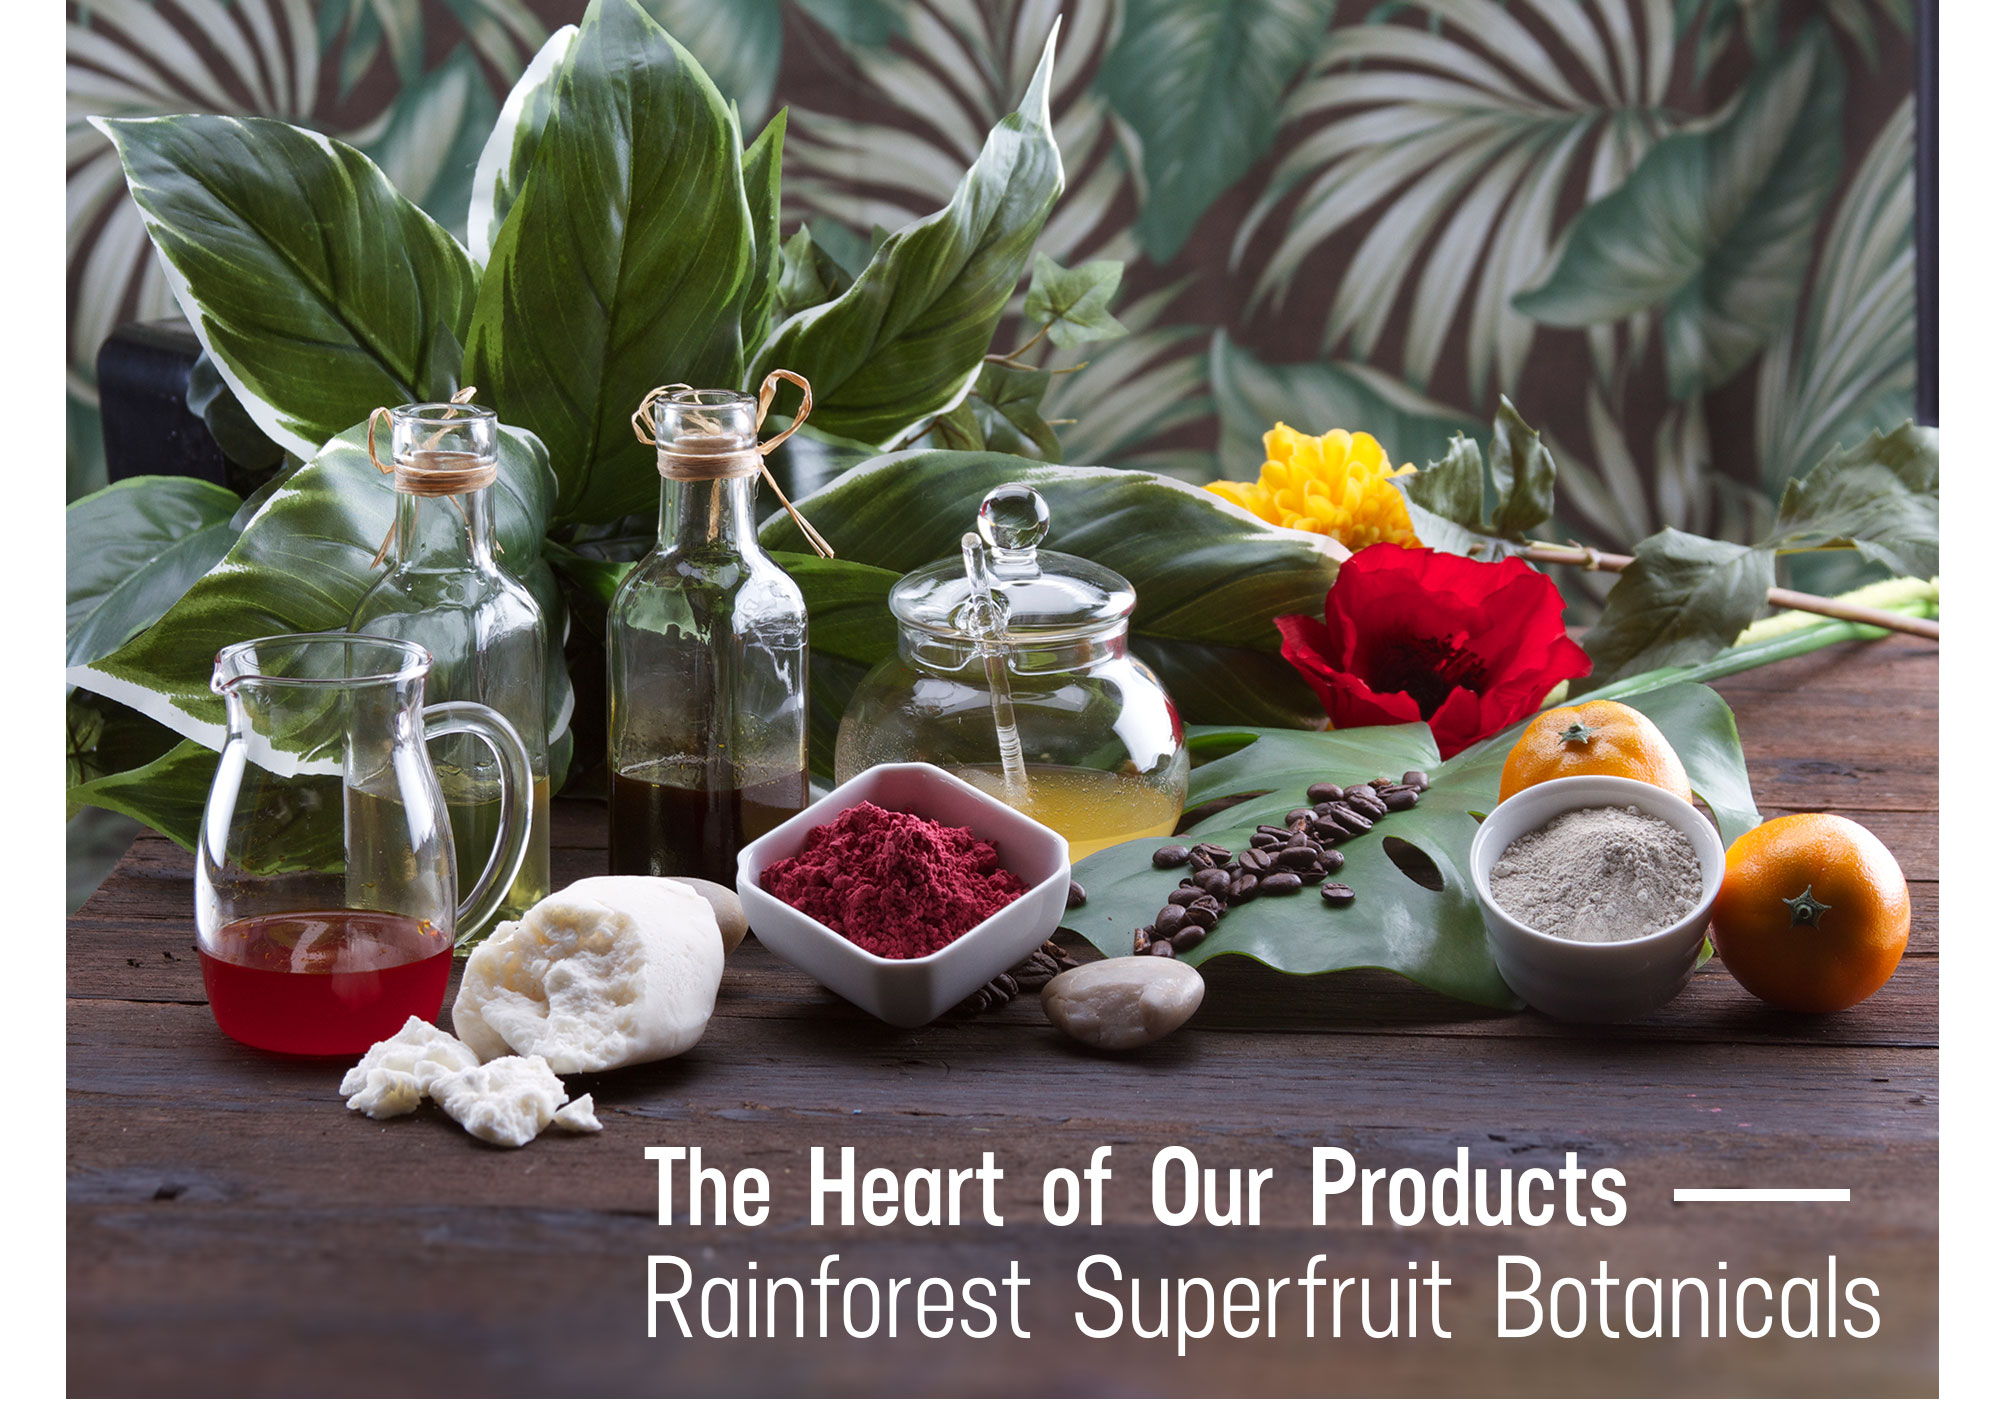 The Heart of Our Products - Rainforest Superfruit Botanicals